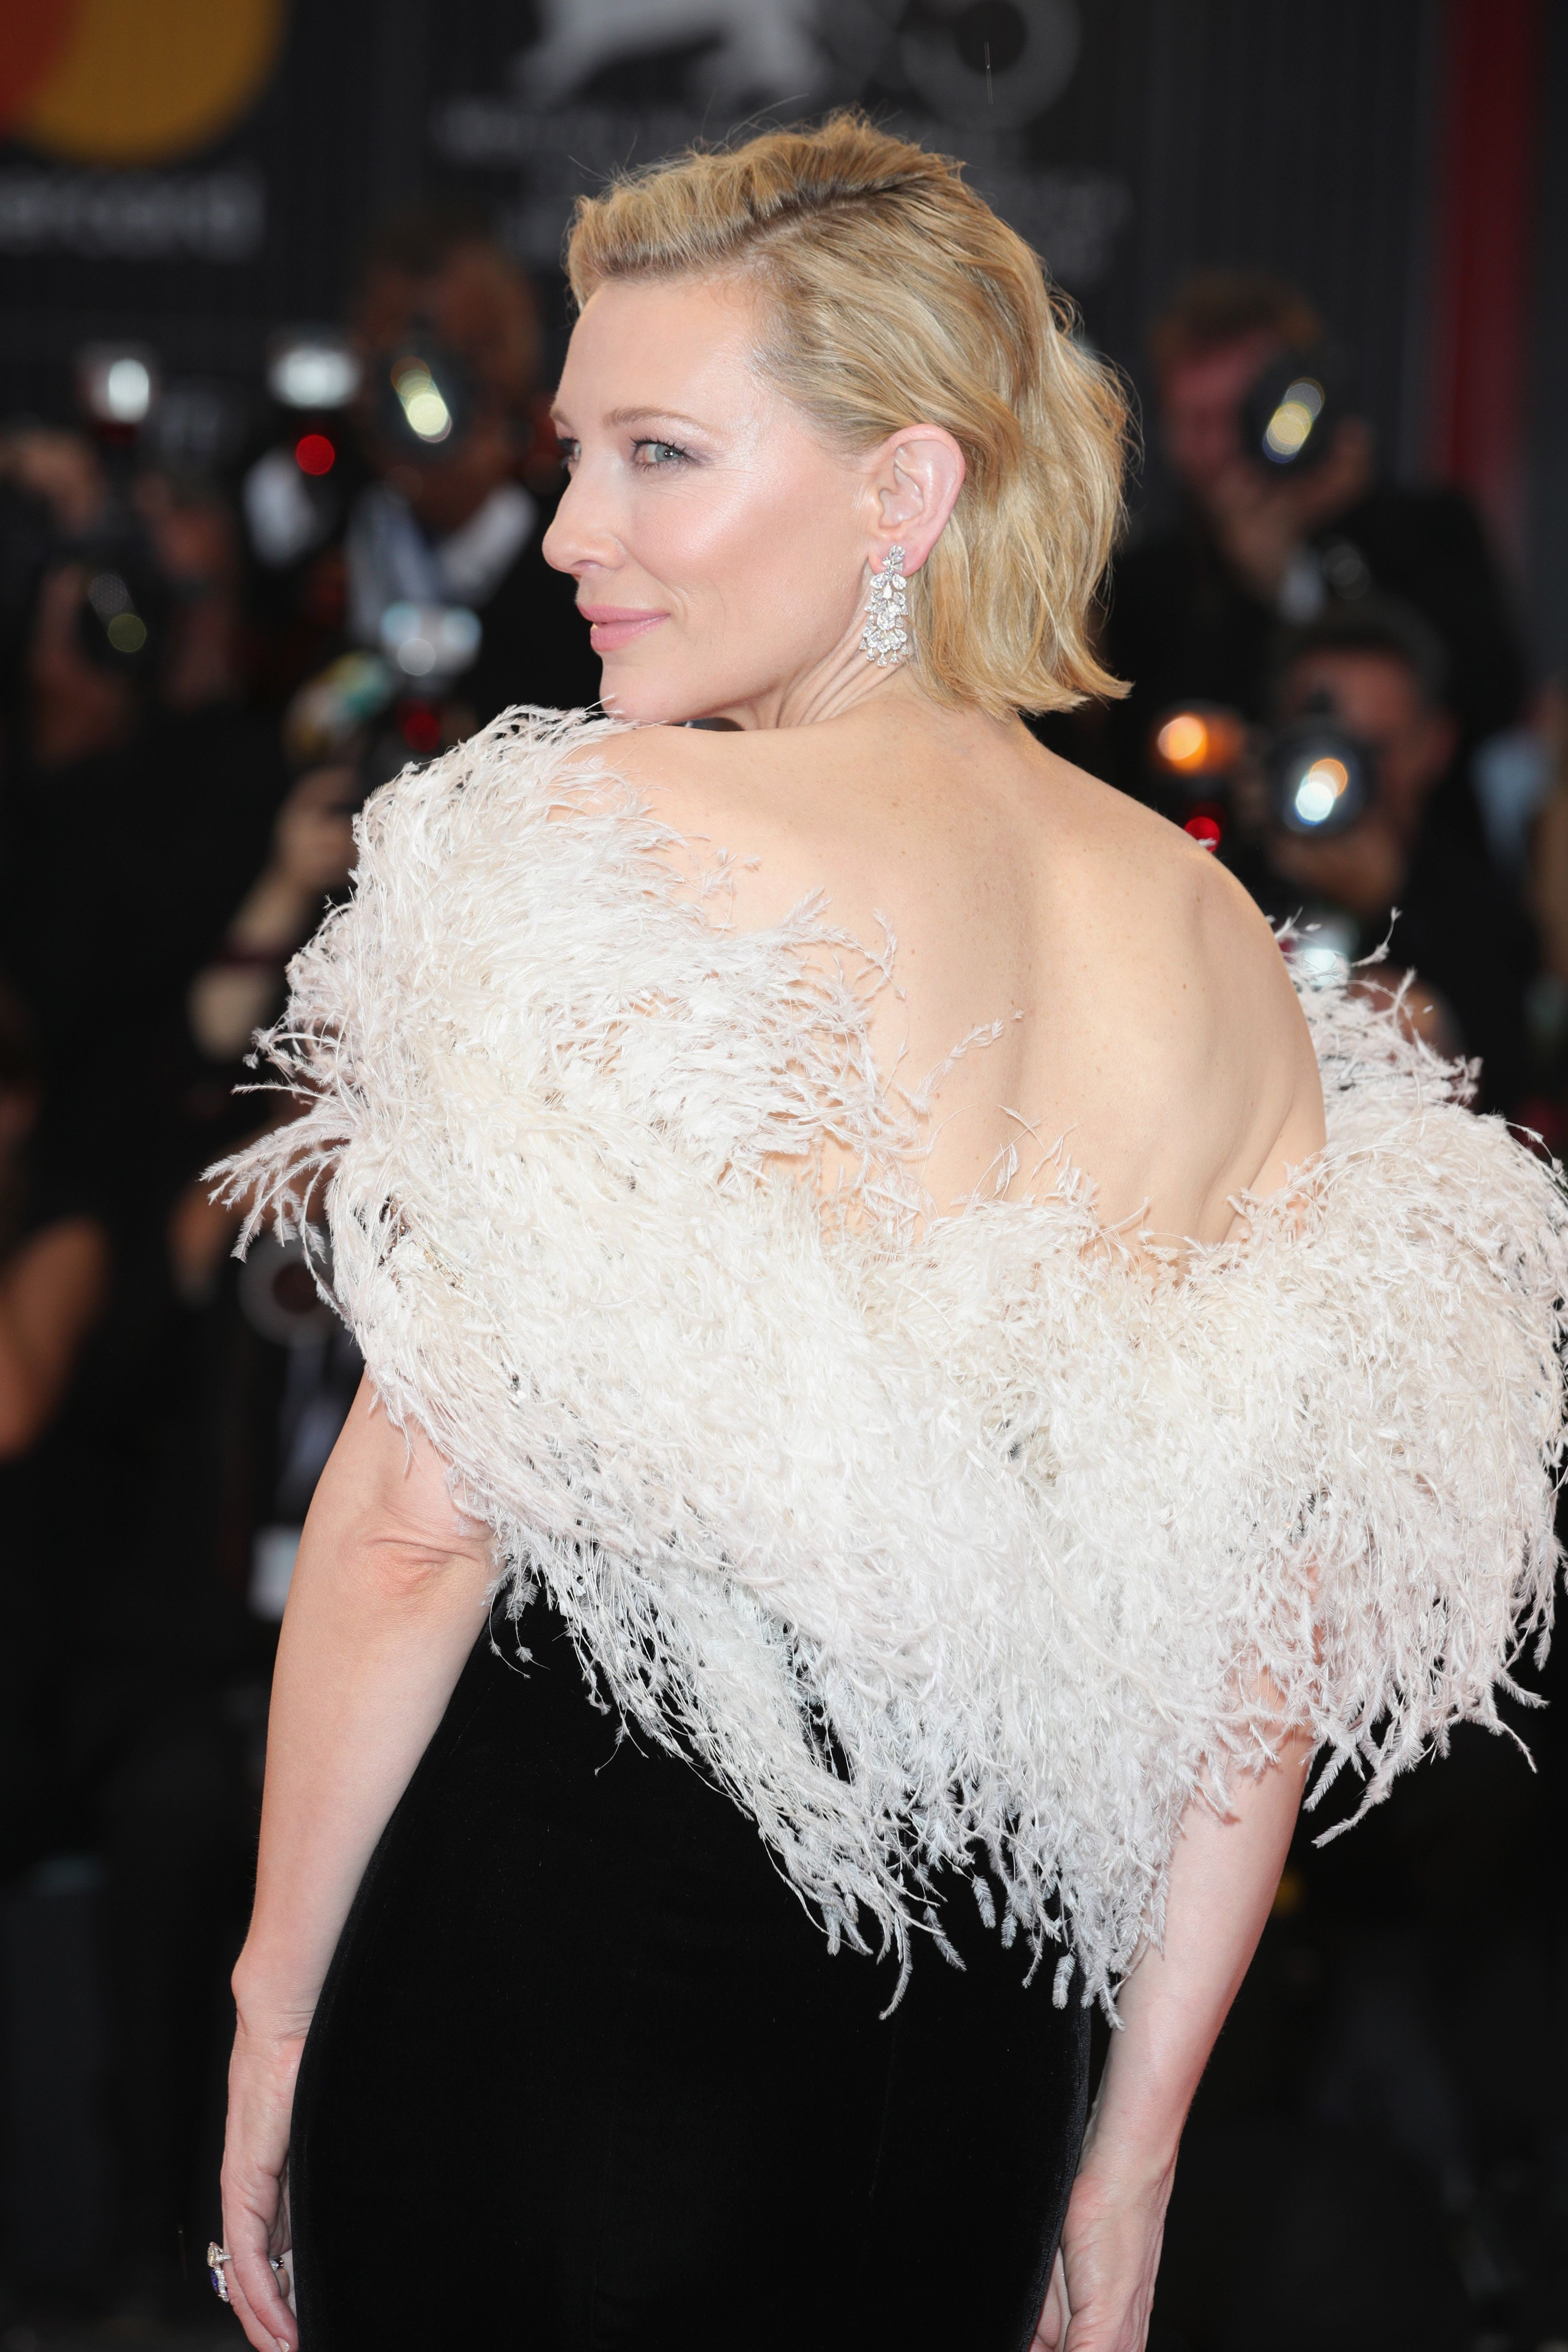 Cate Blanchett on the red carpet late last month at the Venice Film Festival.